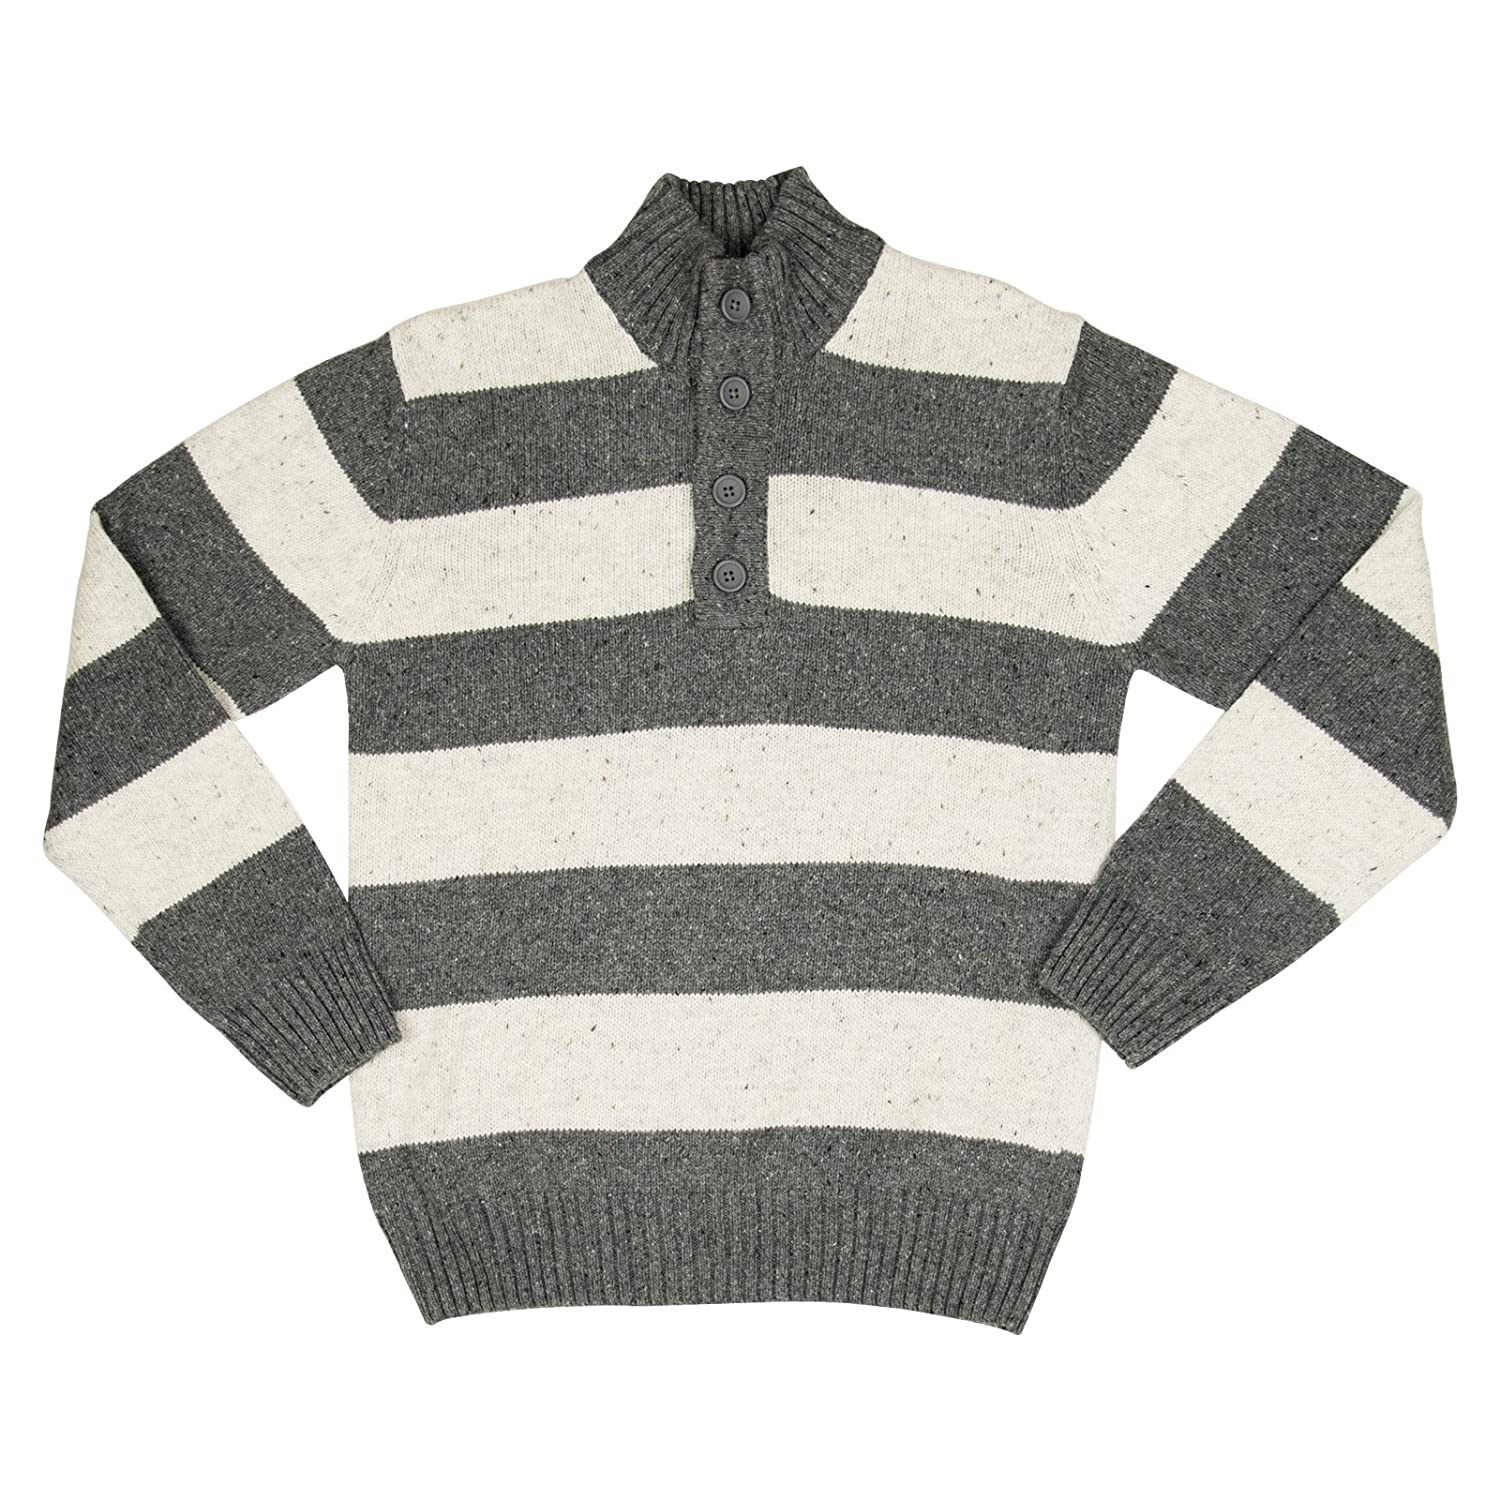 Method Womens Button Up Knit Sweater Small Charcoal Heather